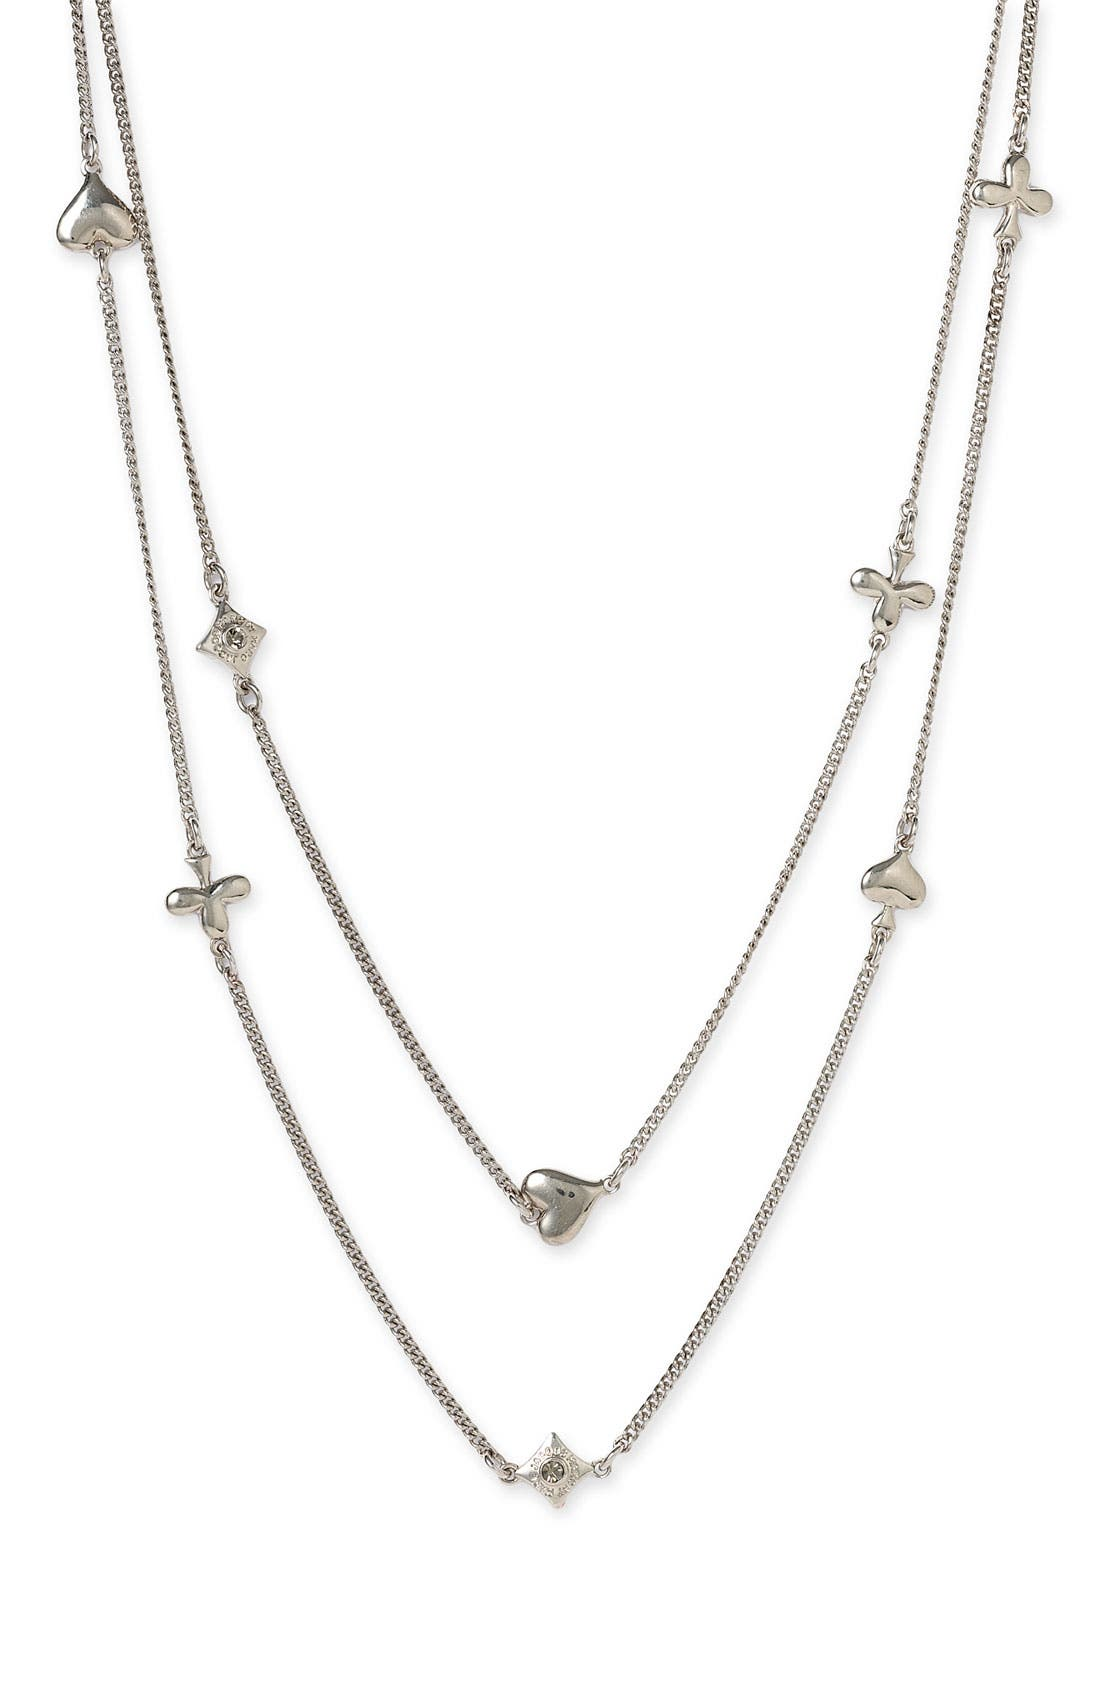 Main Image - MARC BY MARC JACOBS 'House of Cards' Long Necklace